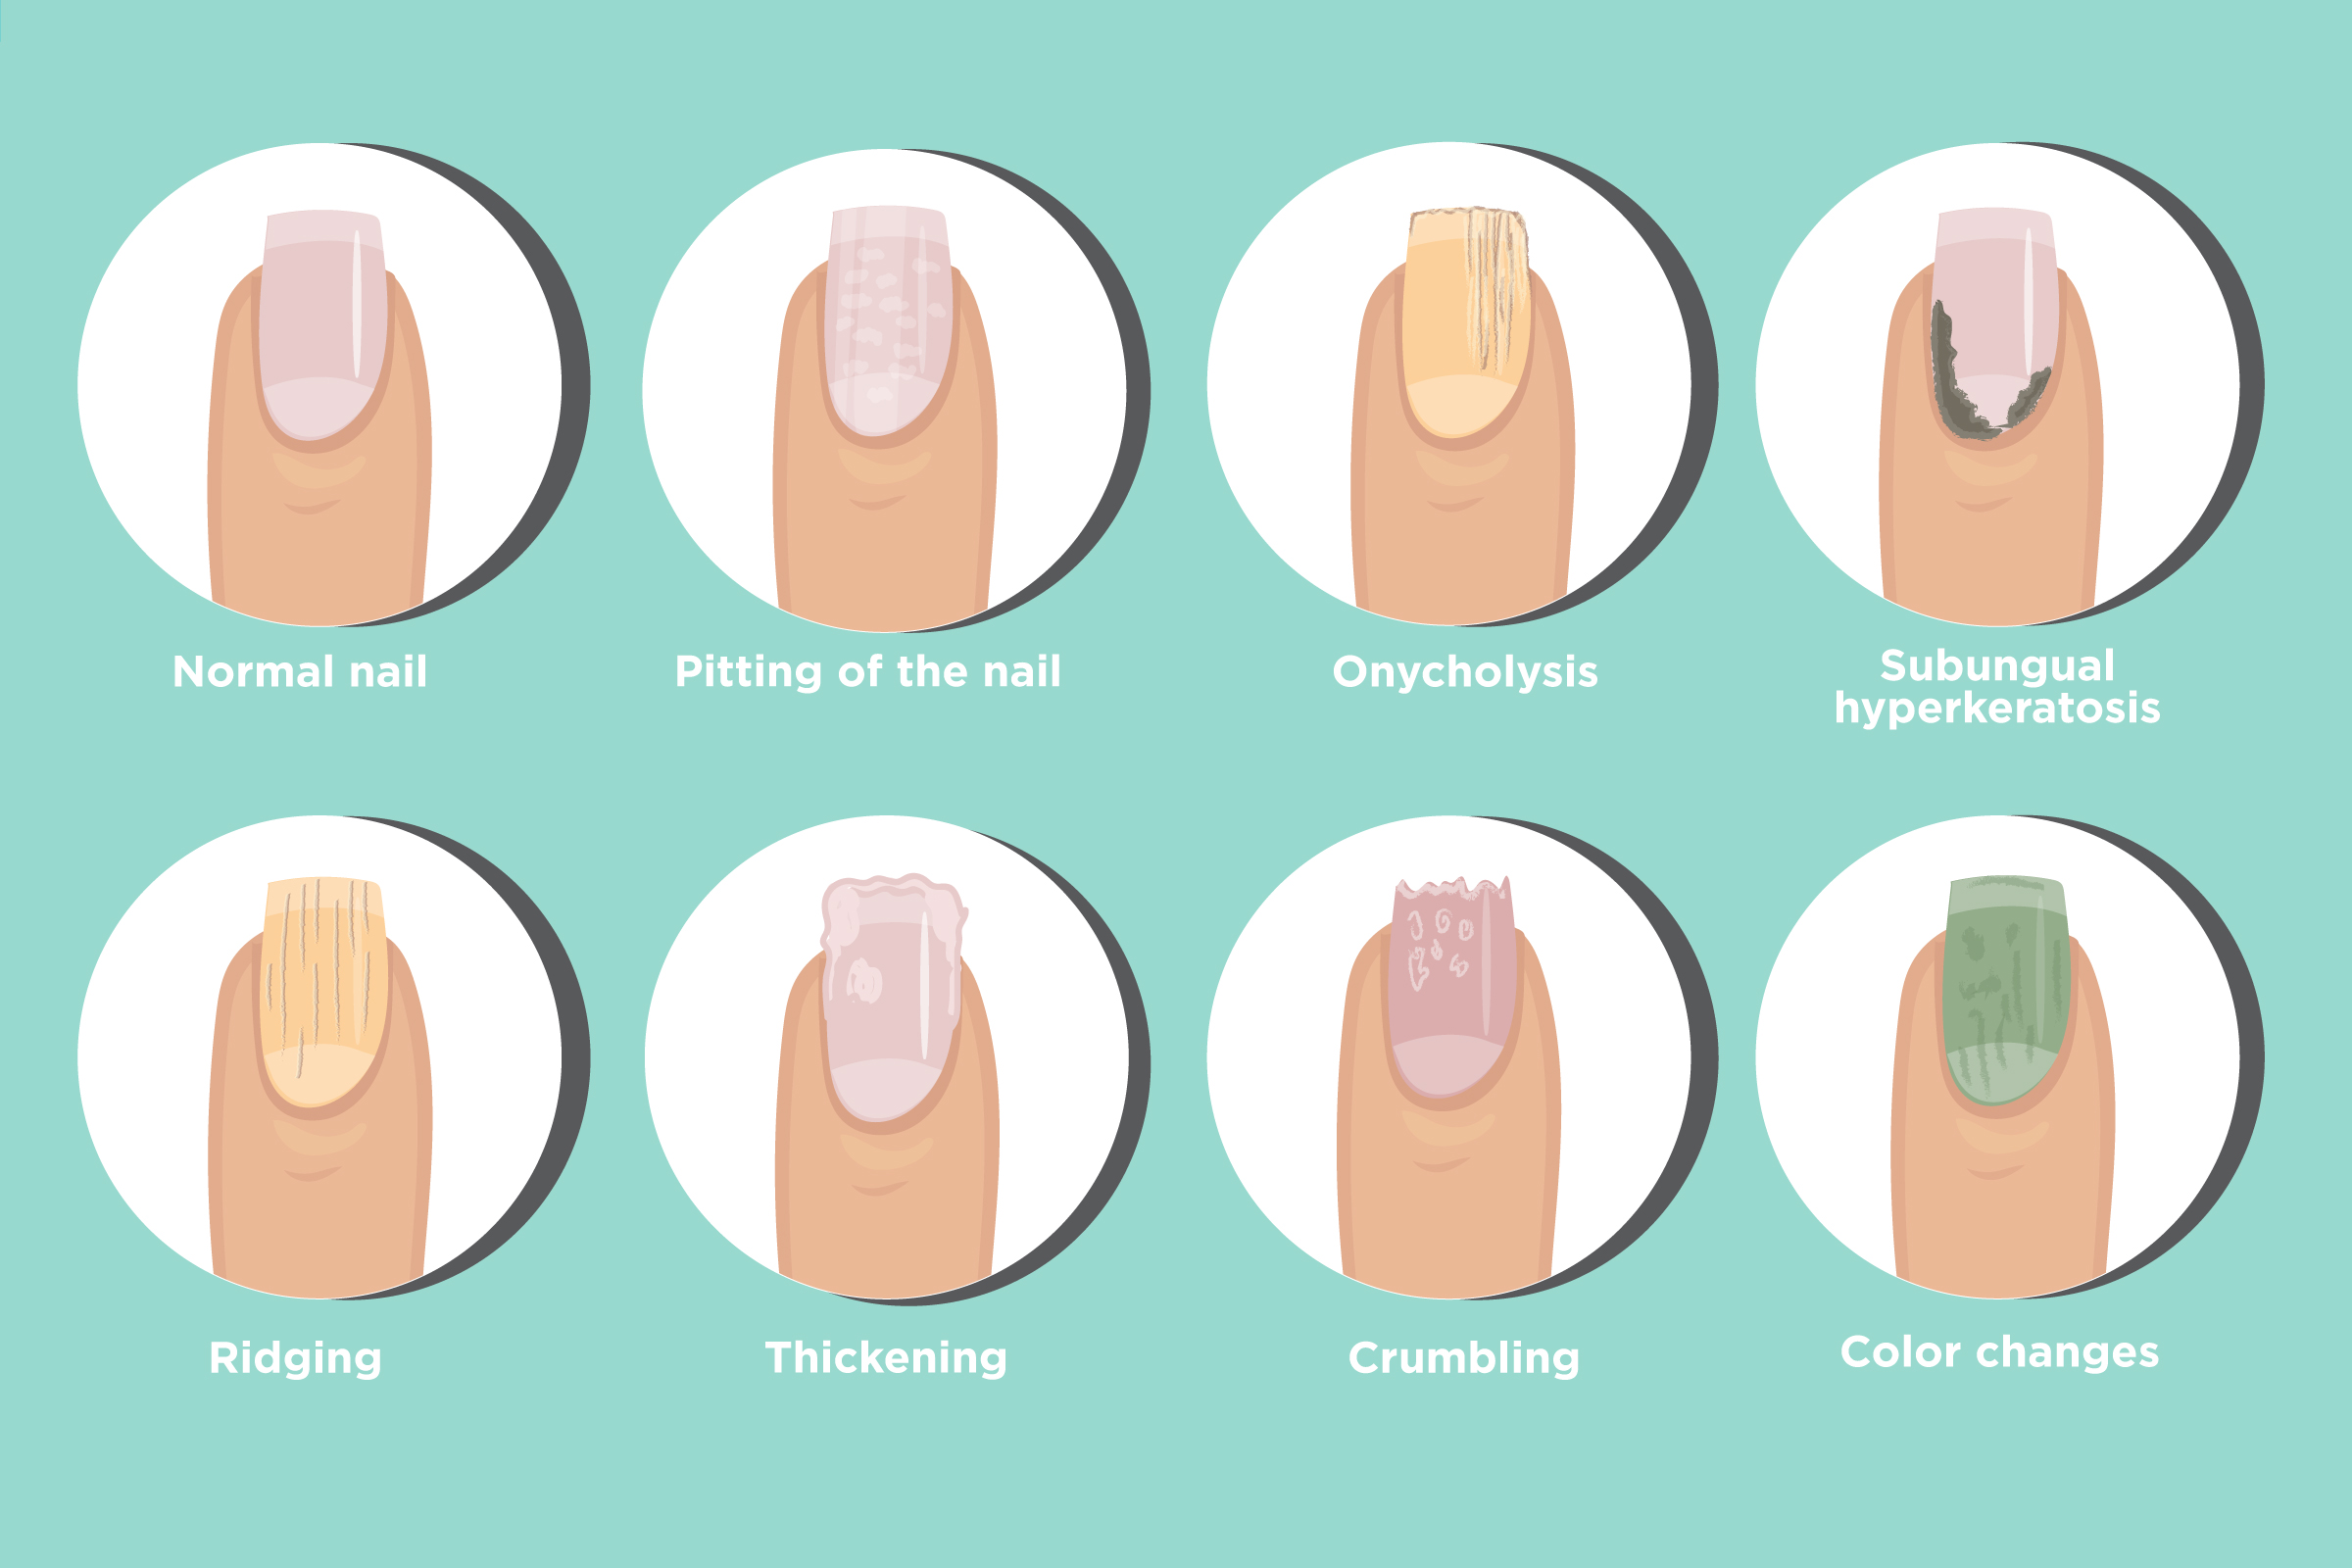 Psoriatic Arthritis Nail Changes: Symptoms and Treatments